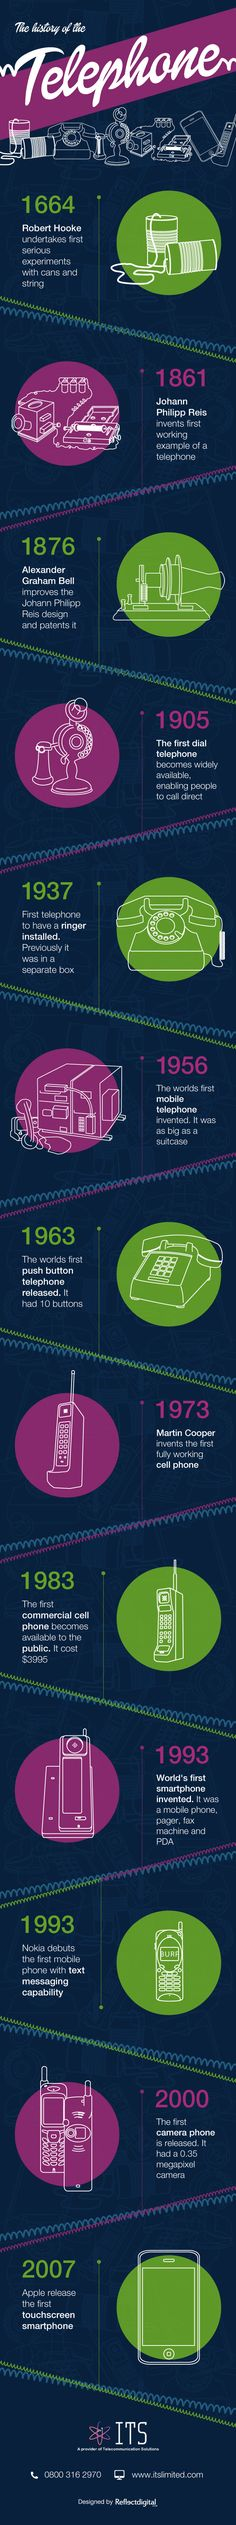 In the infographic the history of the telephone dates back to 1664 starting with cans and string, to the incorporation of cameras and touchscreen smartphone History Timeline, History Facts, Smartphone, Social Studies, Social Media, Preschool Coloring Pages, How To Create Infographics, Mobile Marketing, Data Visualization